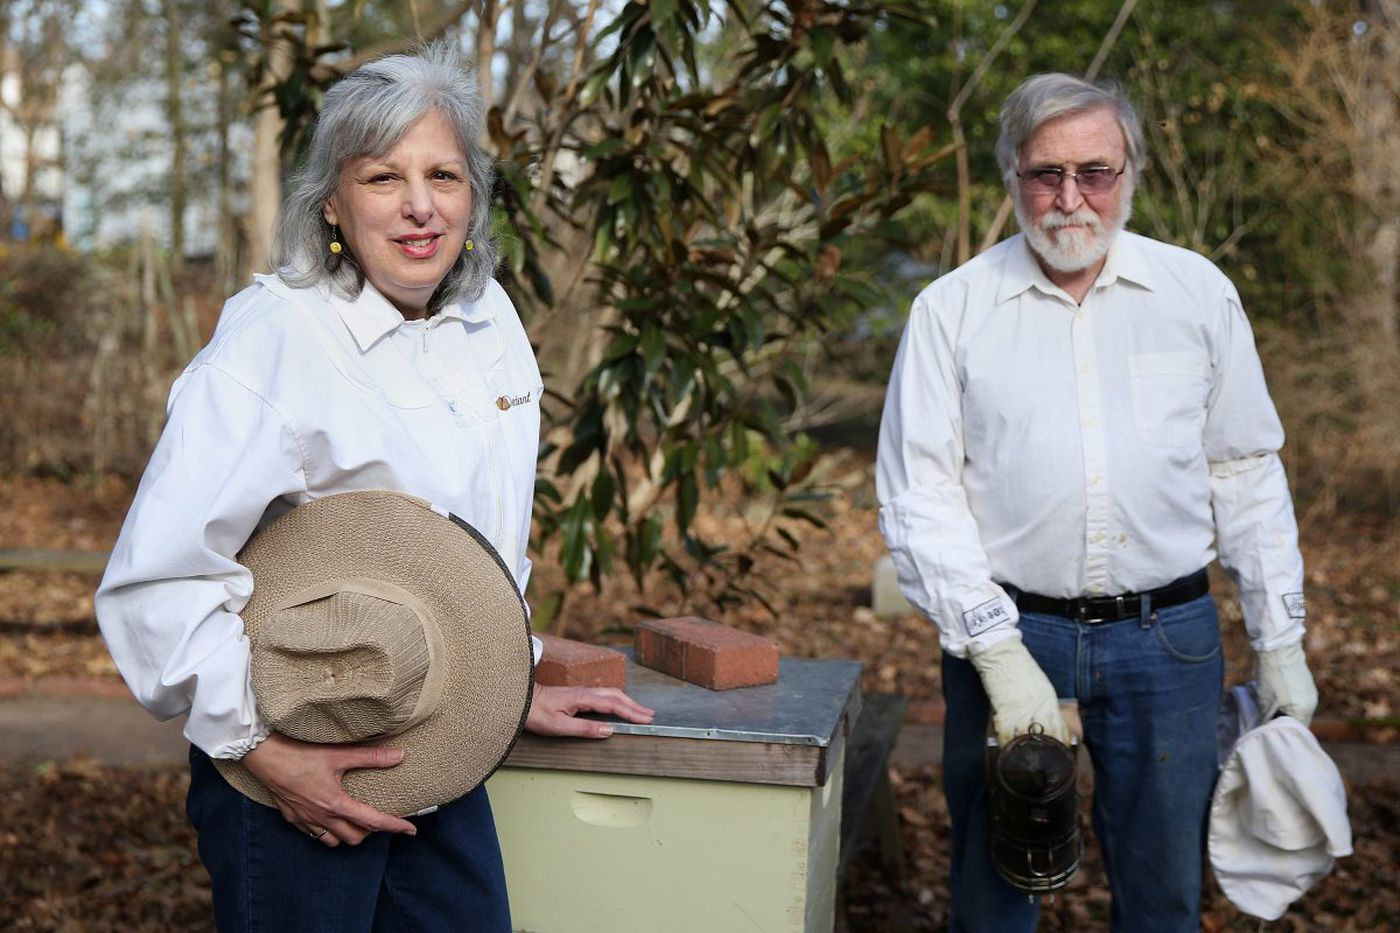 South Jersey beekeepers stung by proposed state regulations